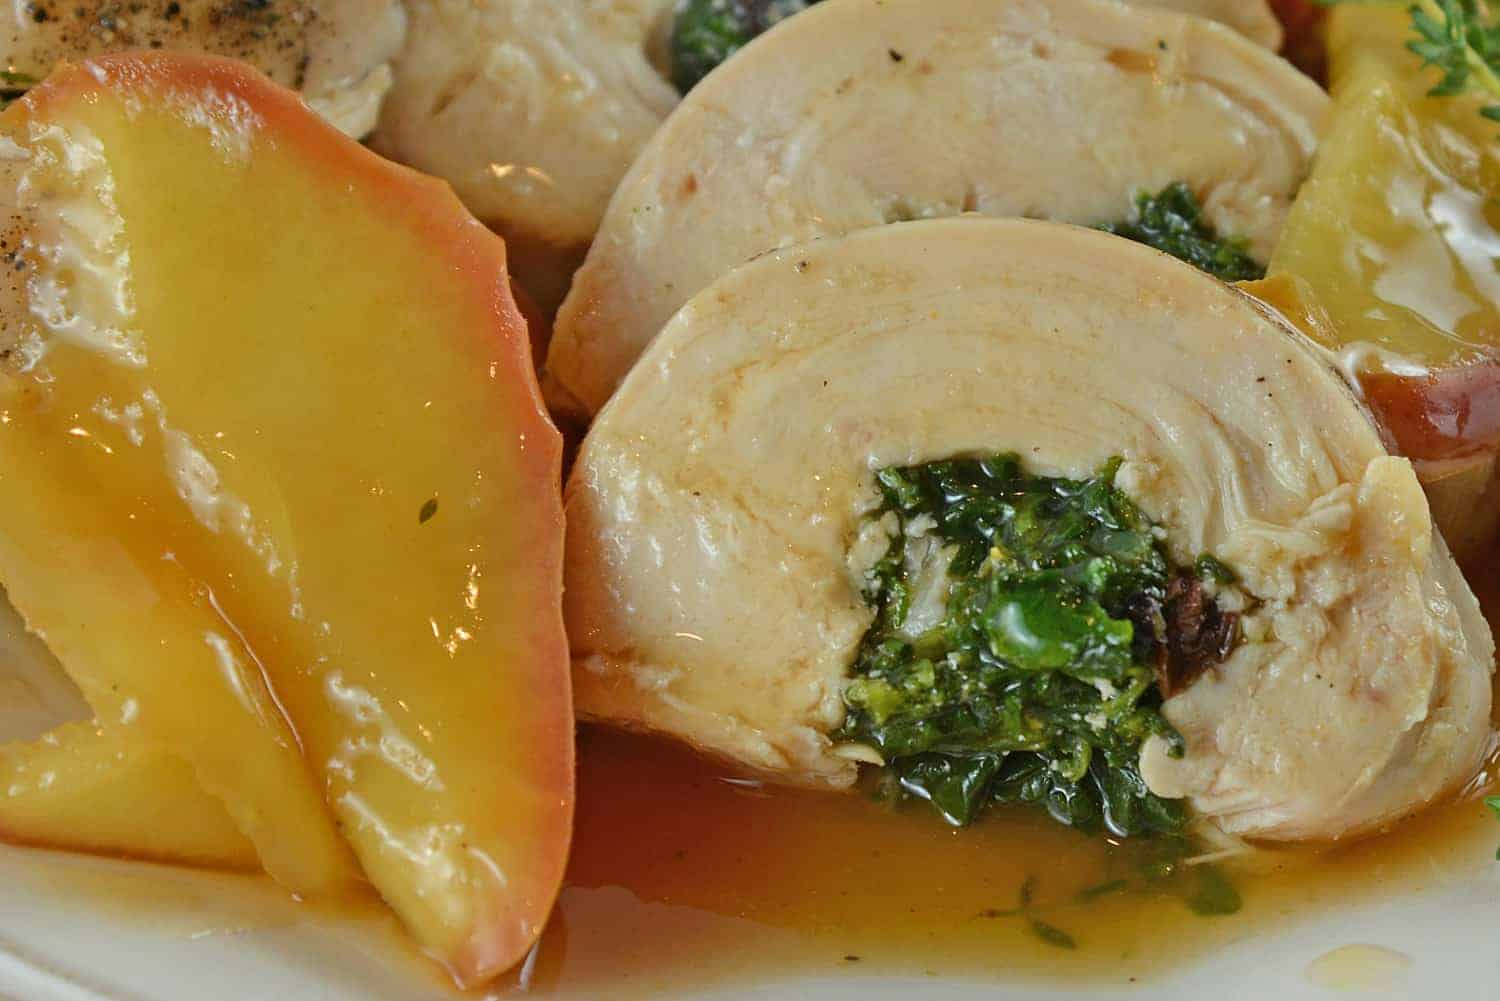 Award winning Stuffed Chicken with Apple Gravy uses pine nuts, spinach, currants and garlic with a savory apple gravy finishes off this easy dinner recipe! #stuffedchicken #easychickenrecipes www.savoryexperiments.com